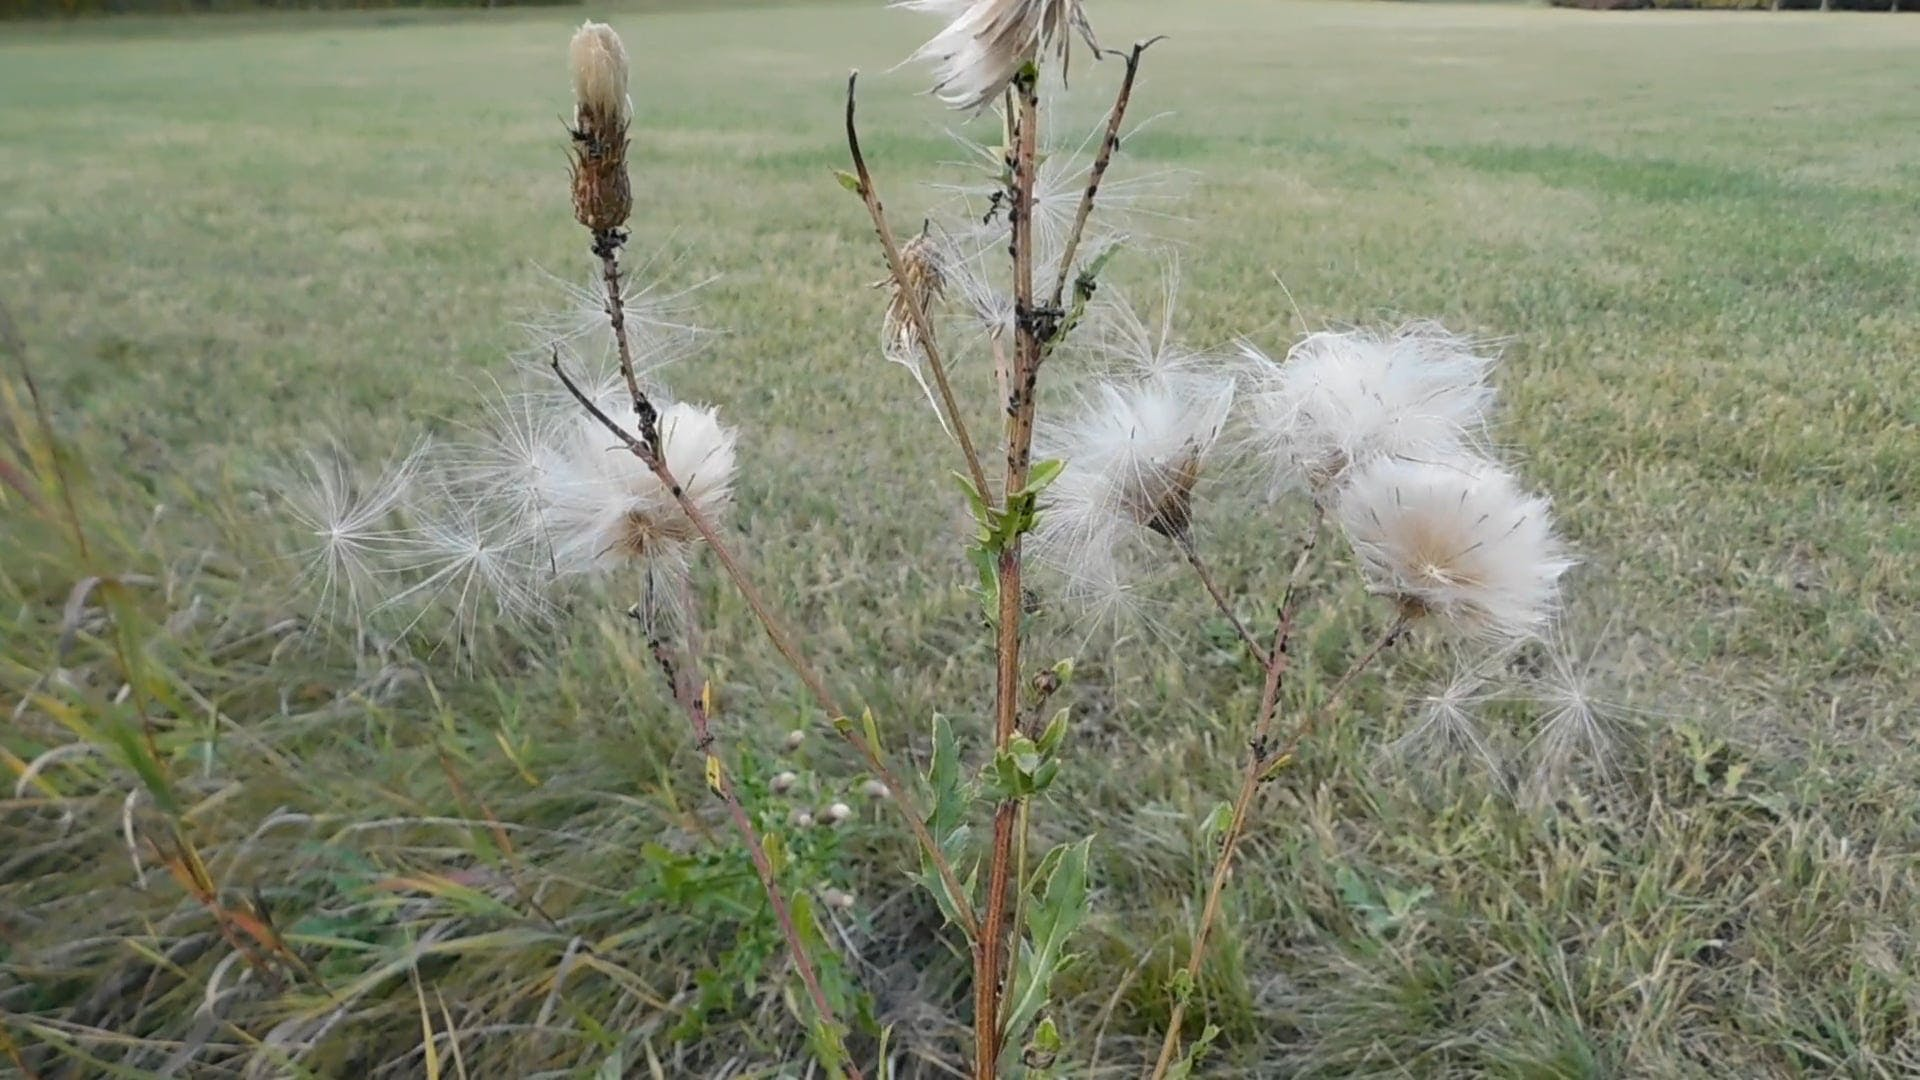 Thistle Seeds Dispersed by Wind